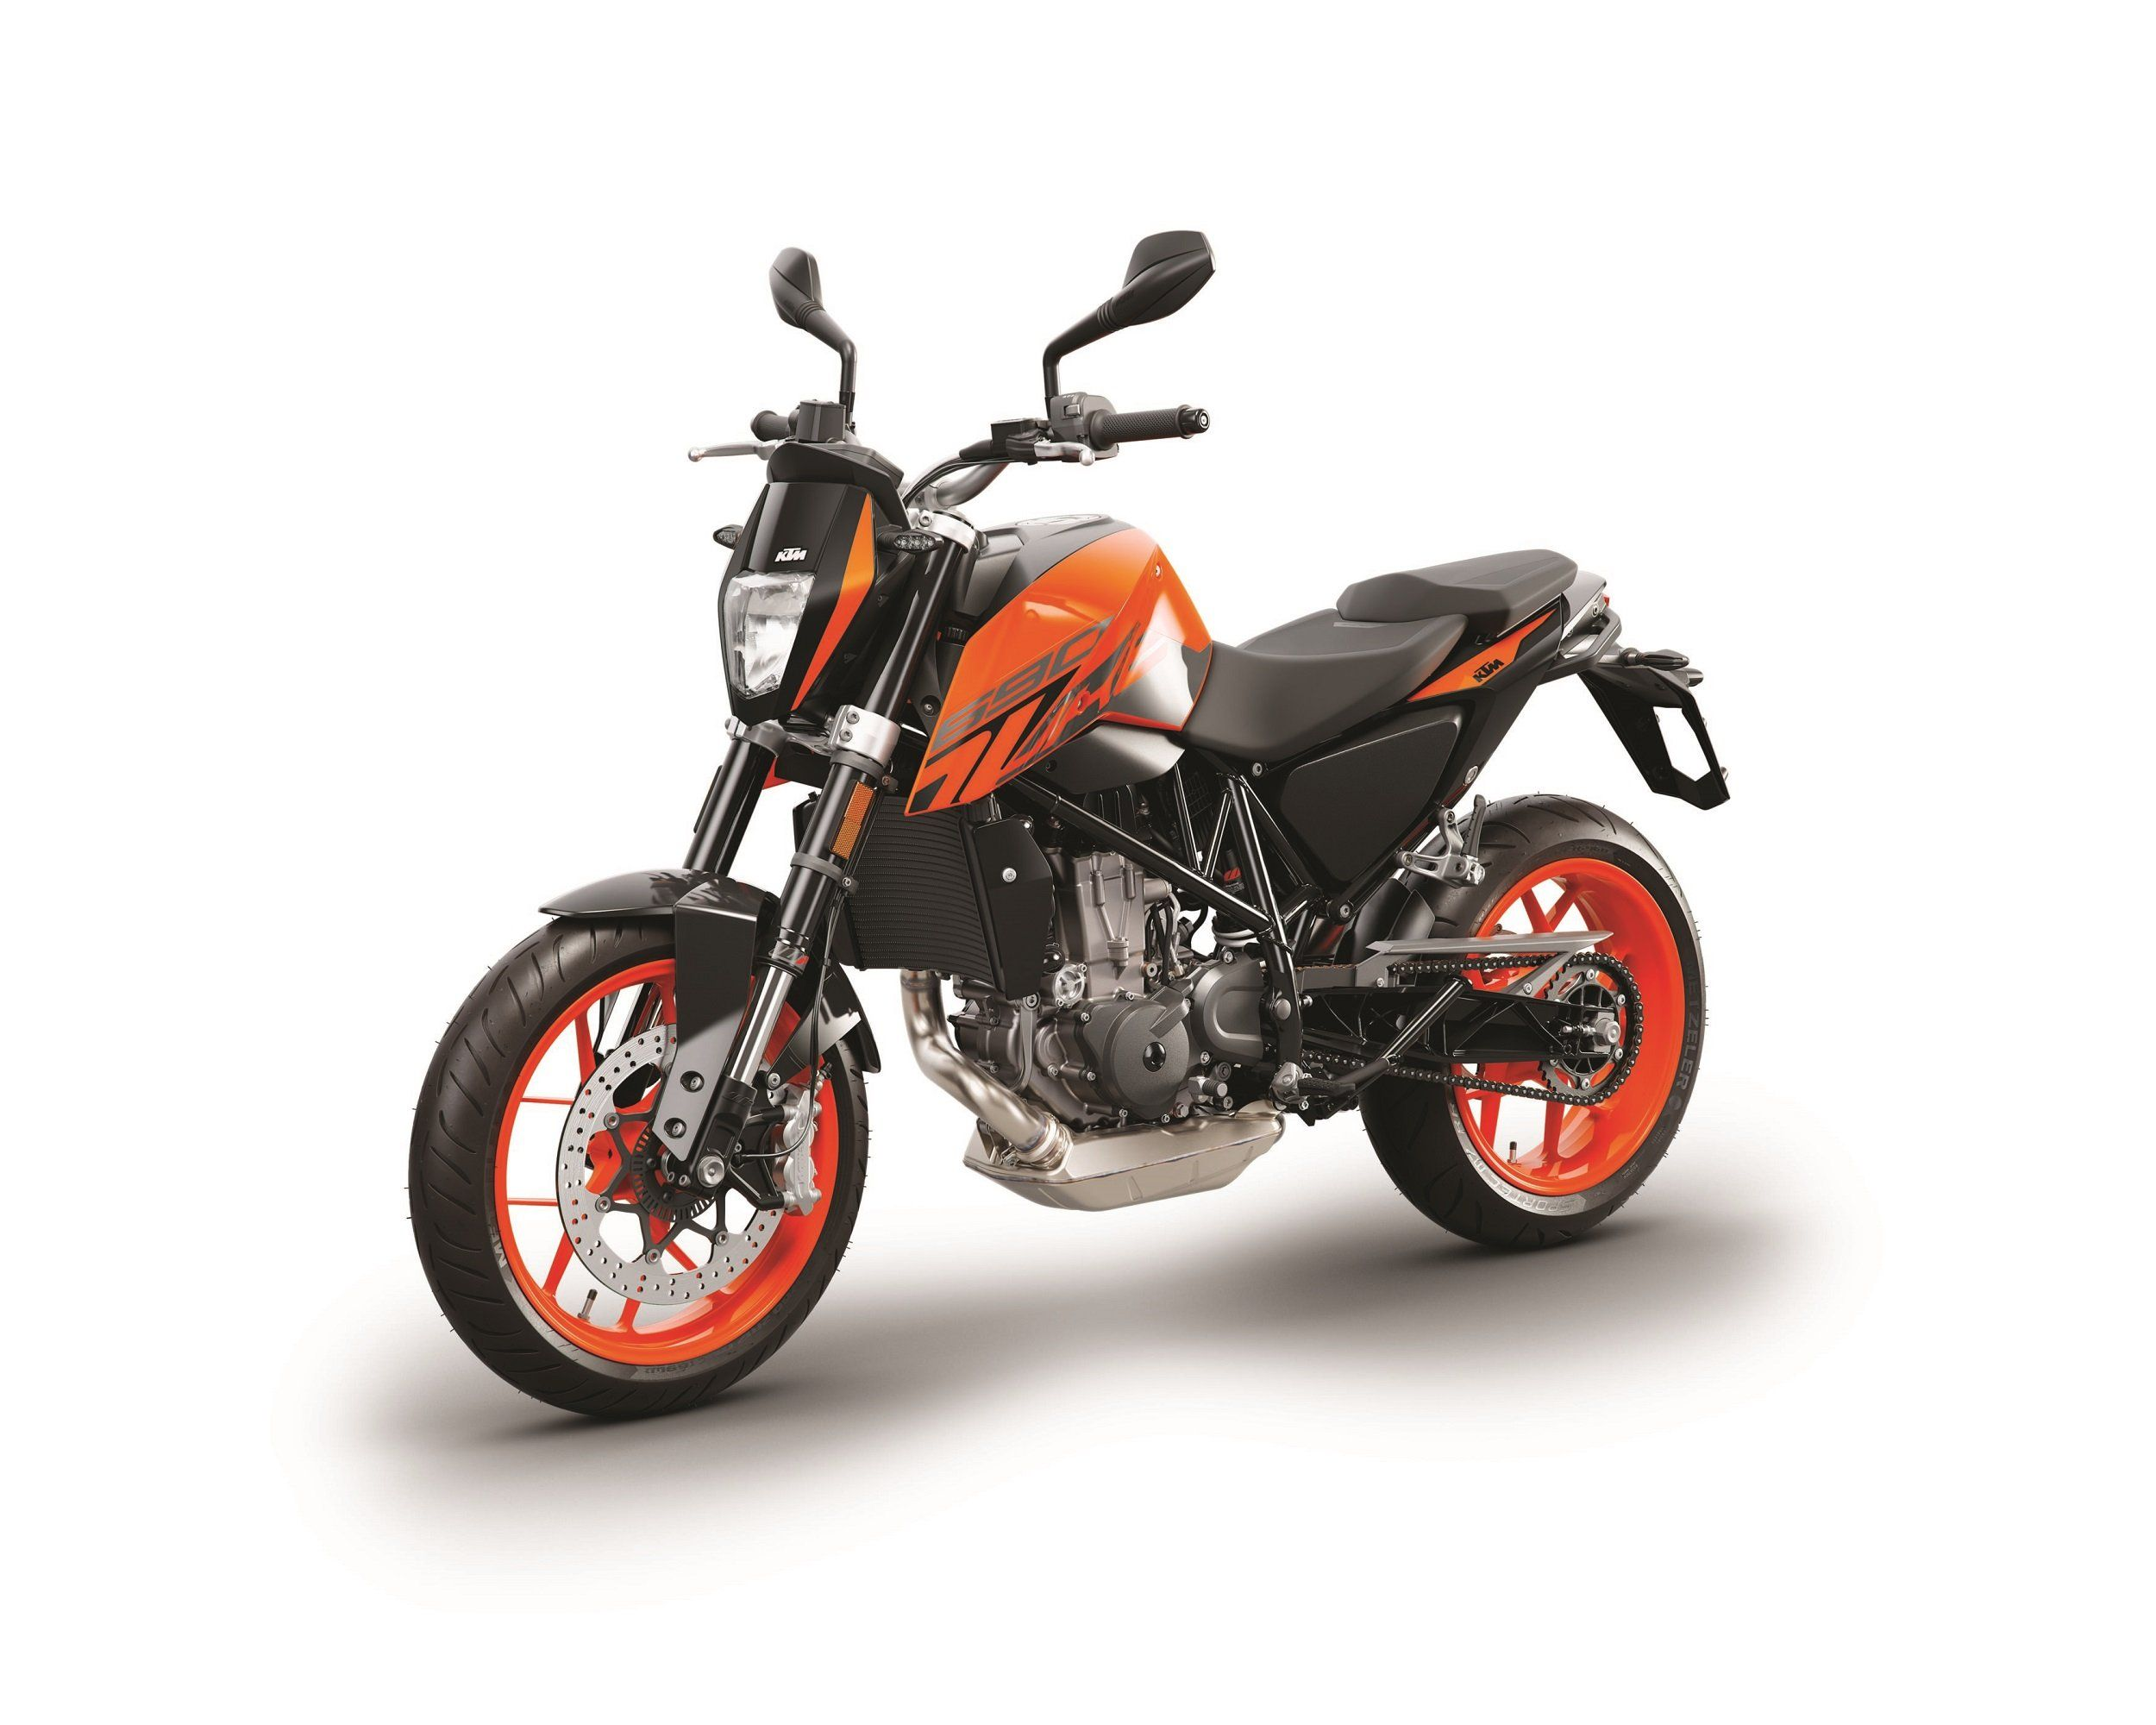 Ktm 690 Duke 2018 Concept And Review From Ktm 690 Duke 2018 From